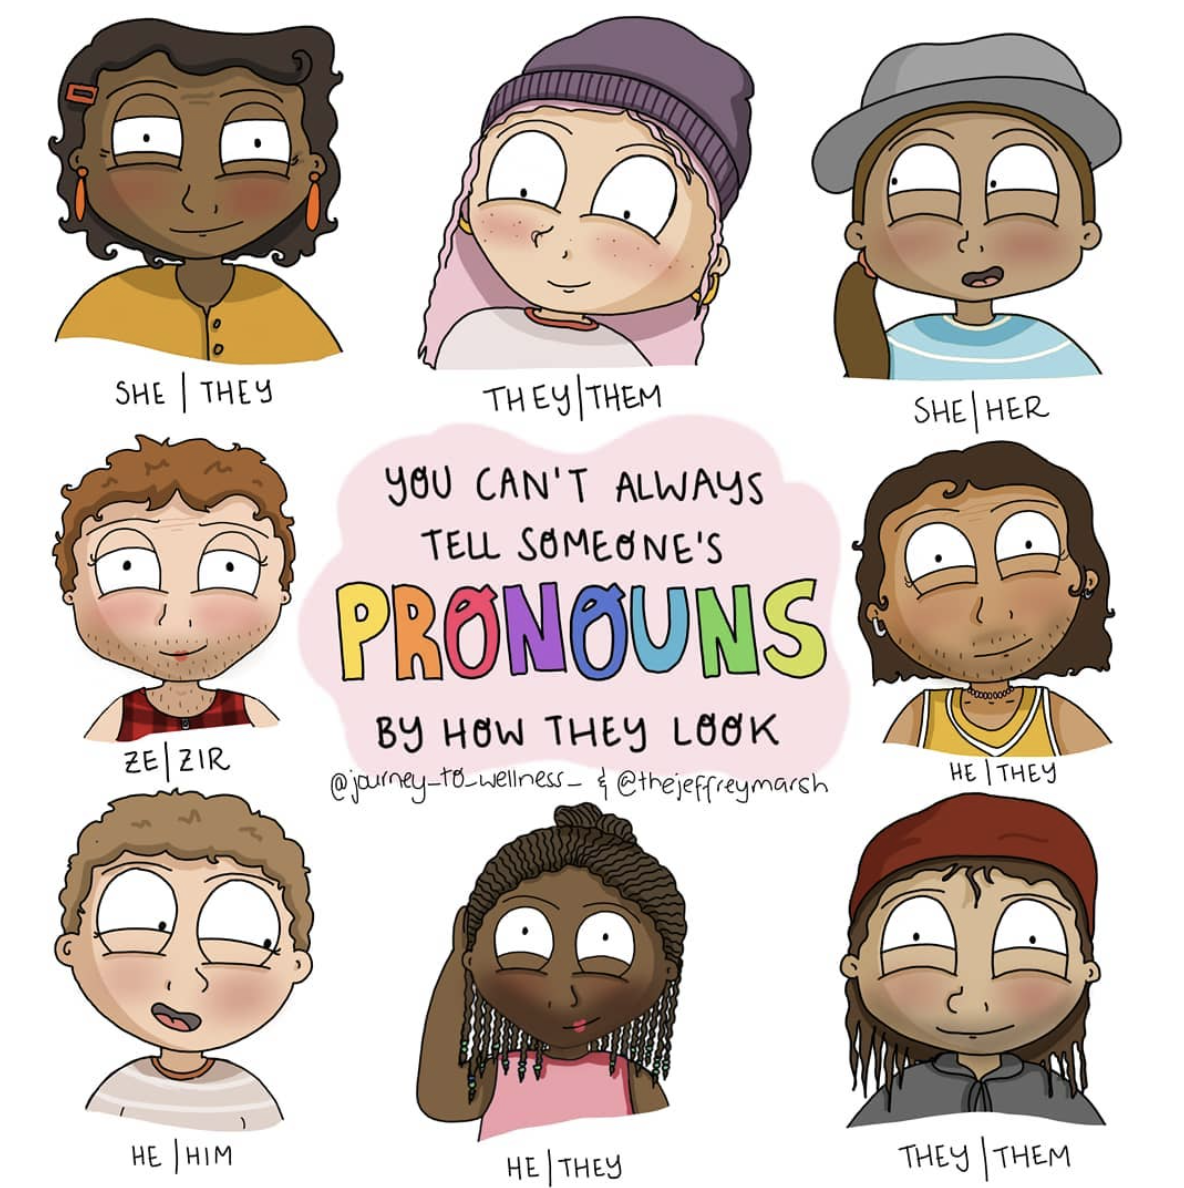 An illustration of different people to make a point about how you can't always tell someone's pronoun based on how they look